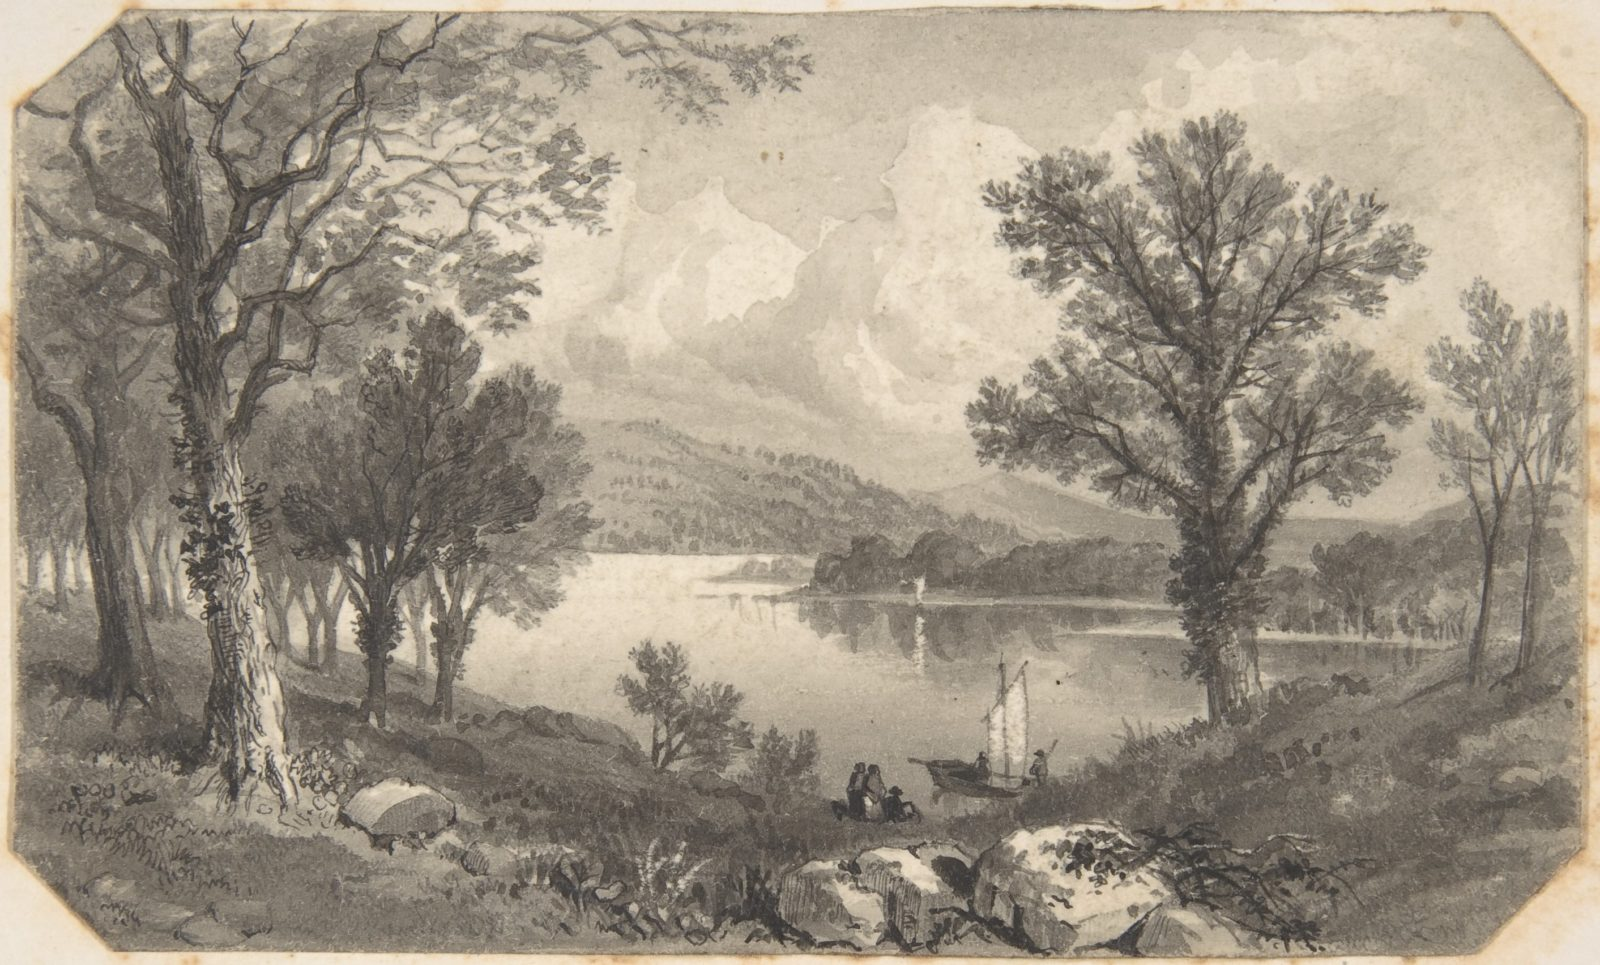 View of a lake or river with a sailboat